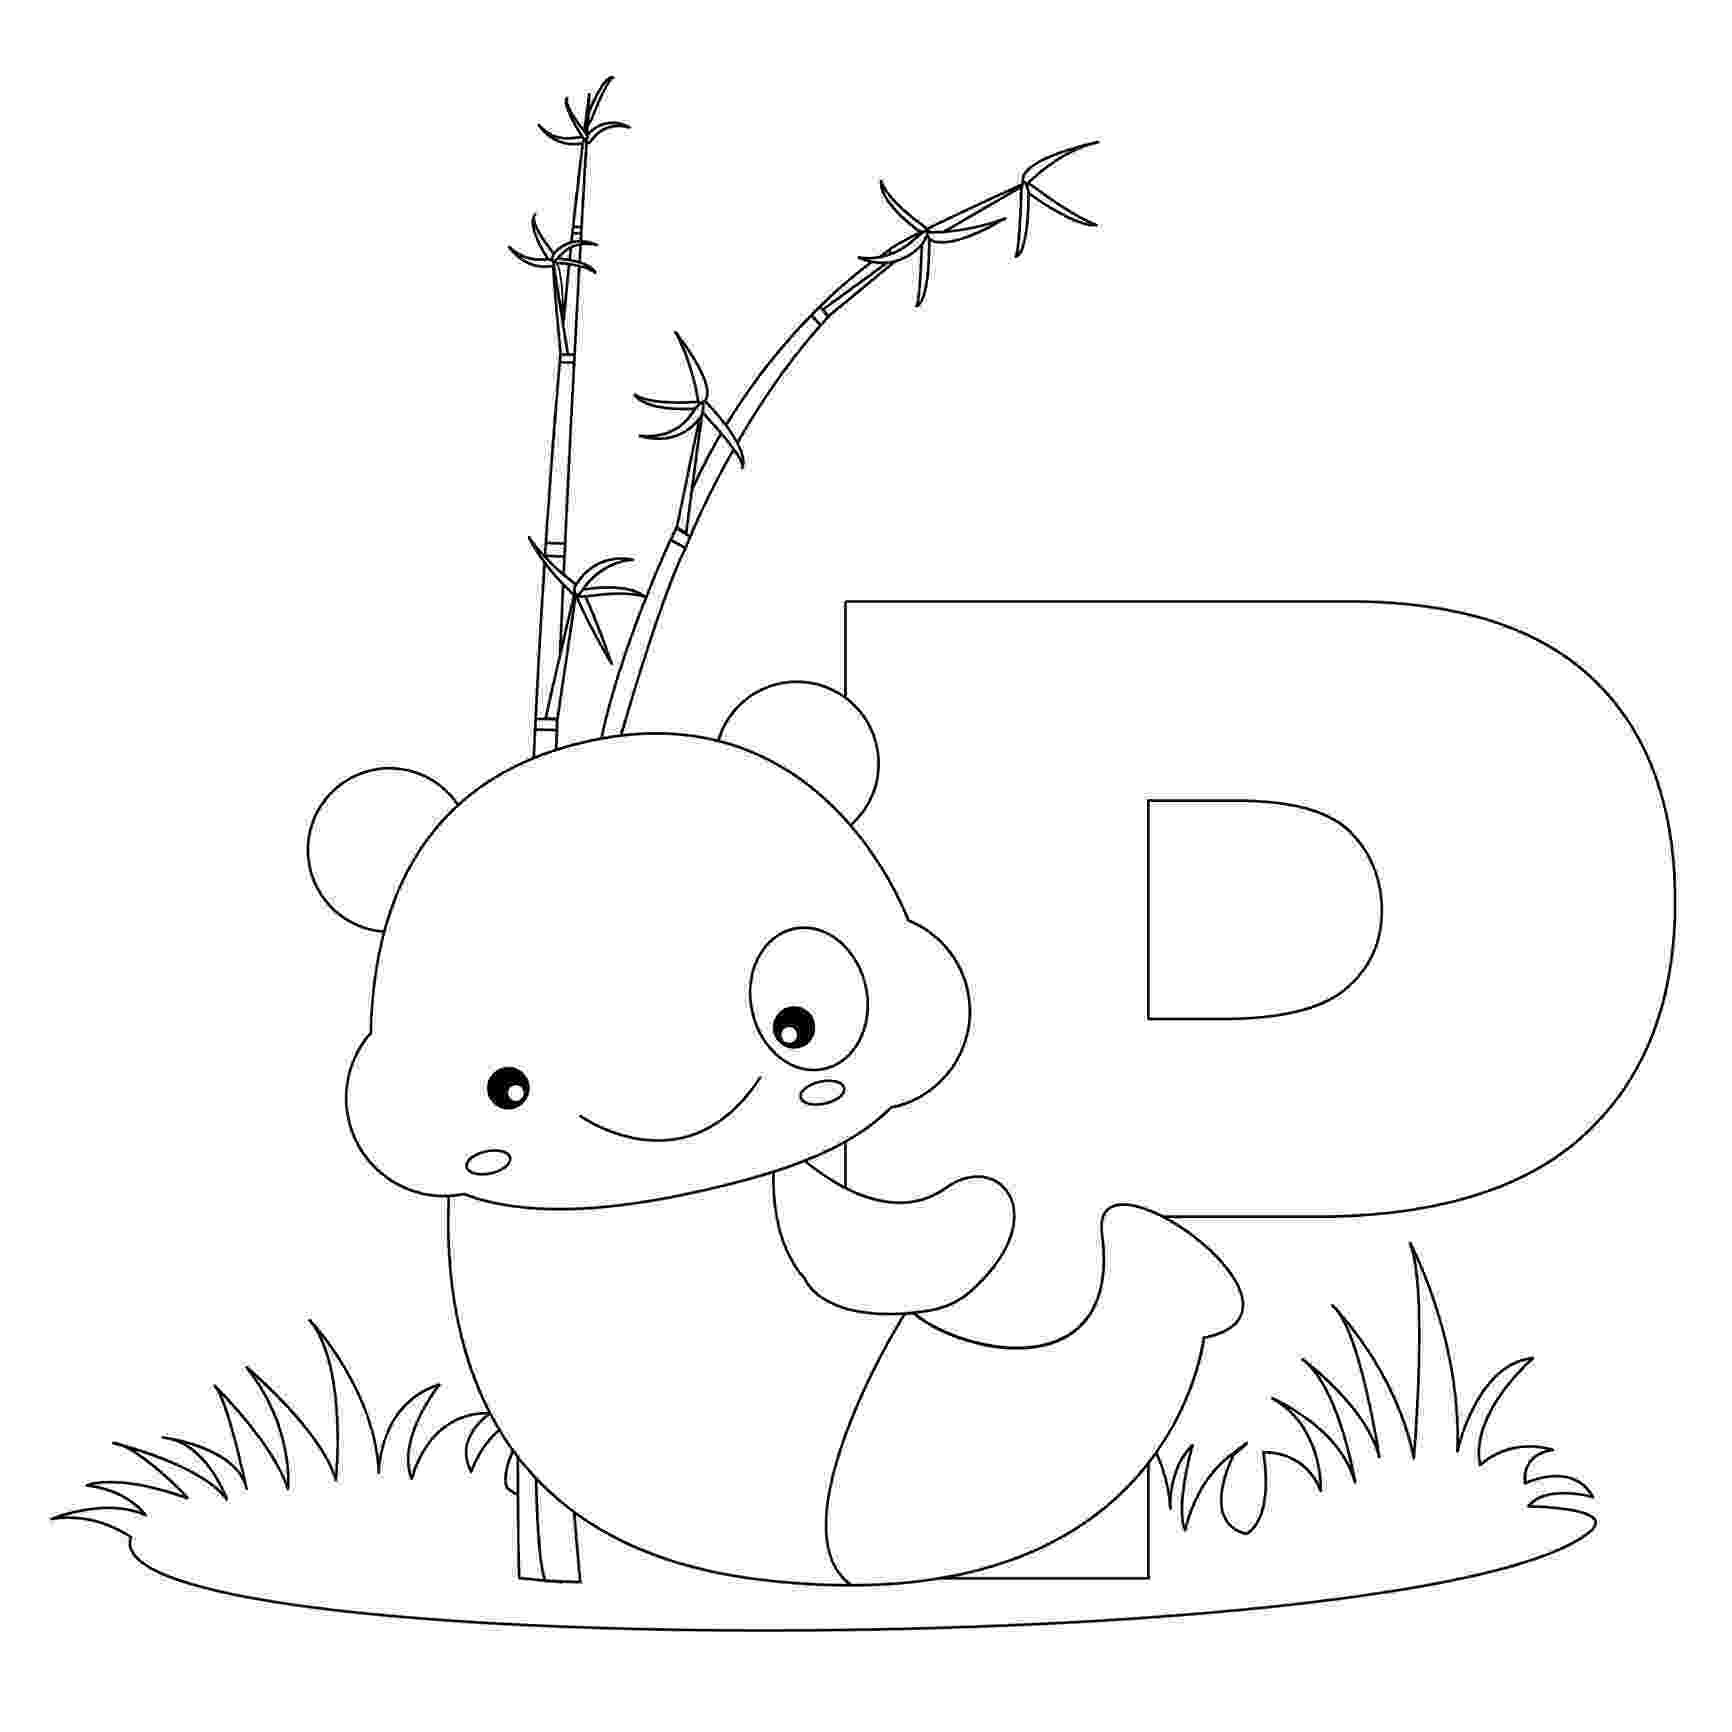 abc coloring book printable free printable alphabet coloring pages for kids best book abc printable coloring 1 1